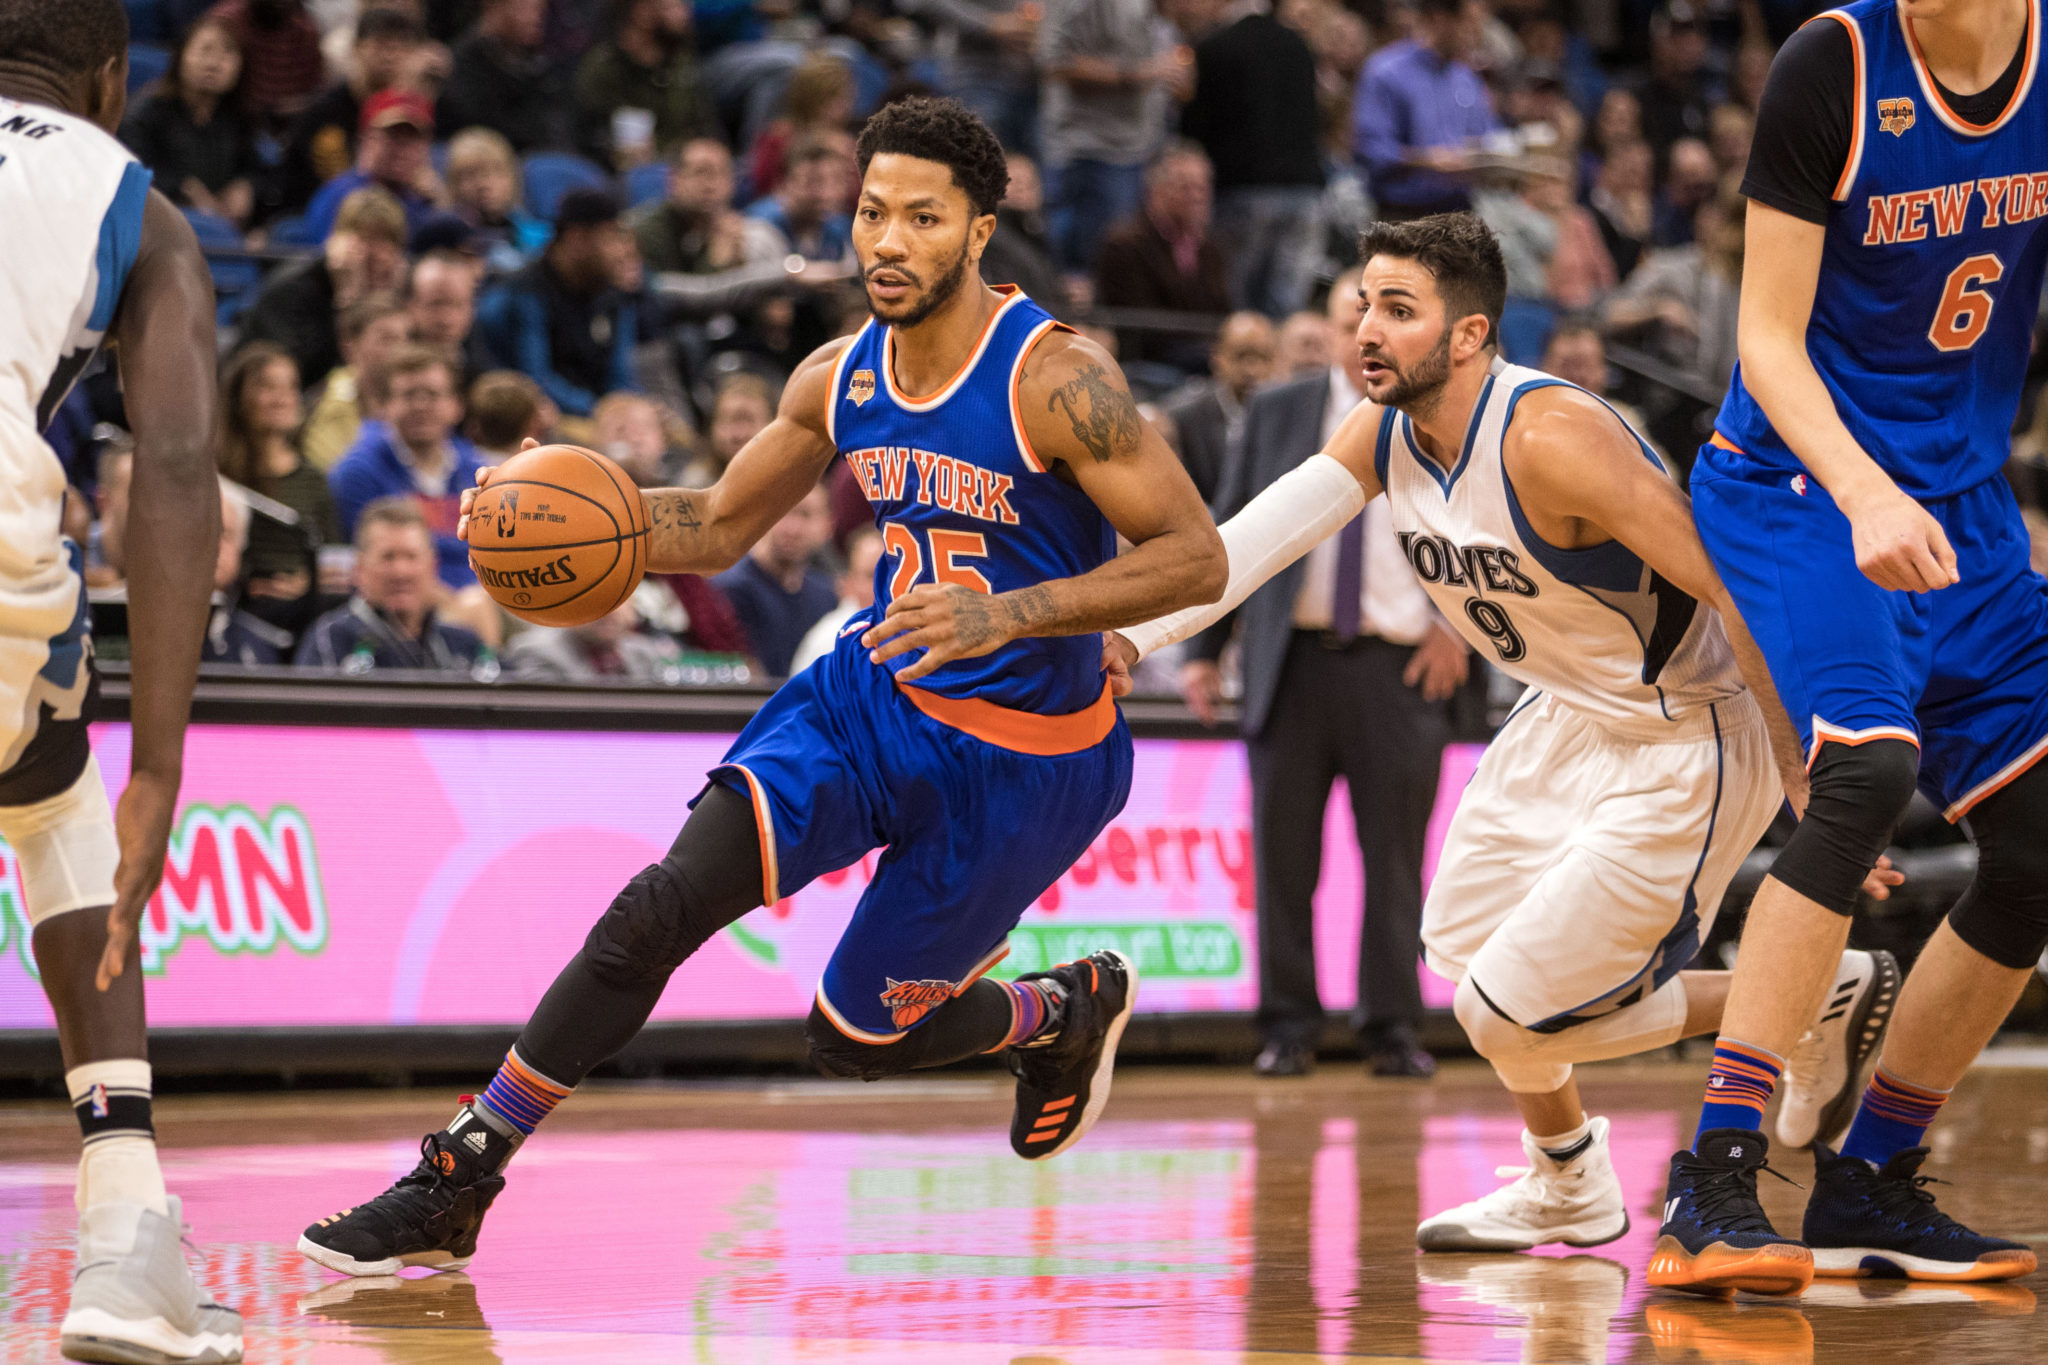 Timberwolves reject New York Knicks' Derrick Rose-Ricky Rubio trade proposal